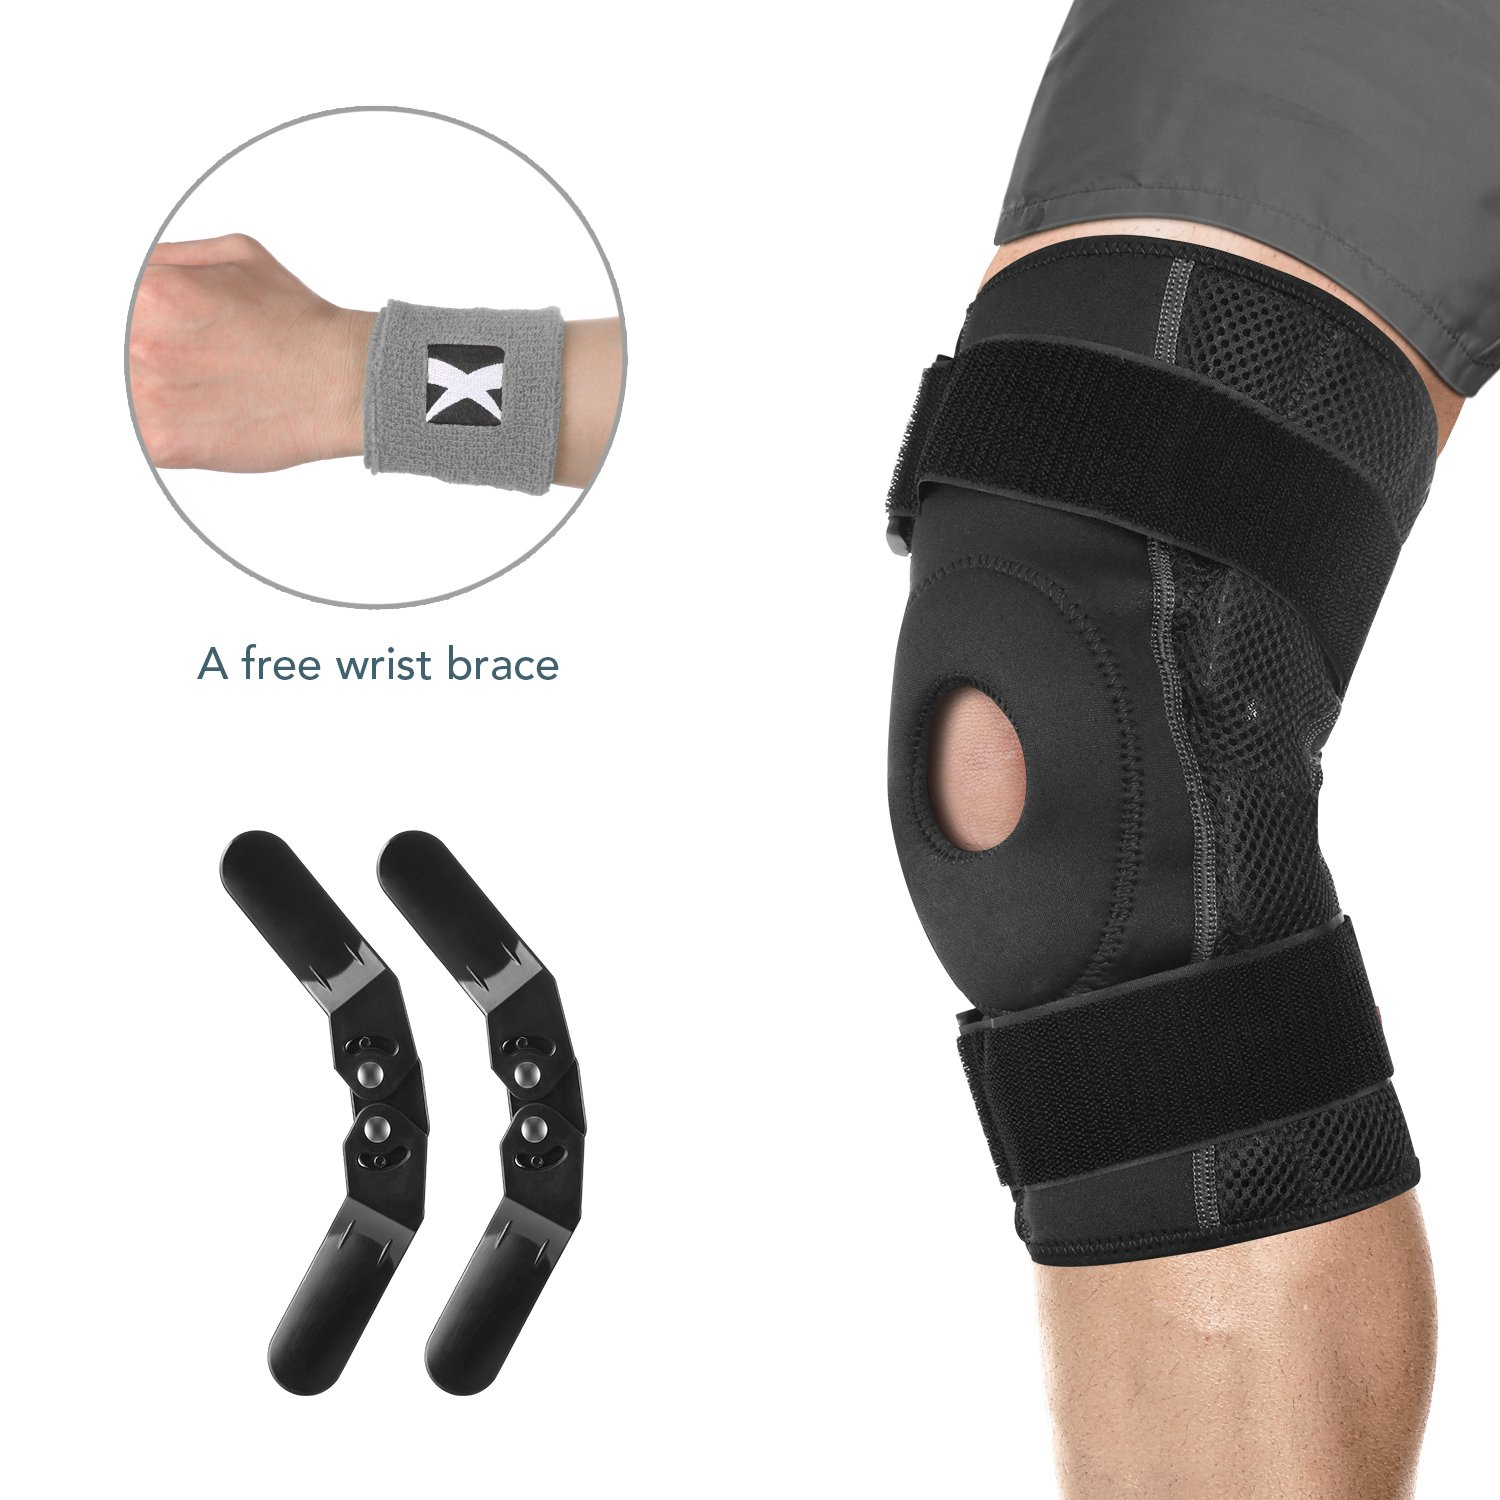 MARNUR Knee Brace Medical Grade Knee Support Stabilizer